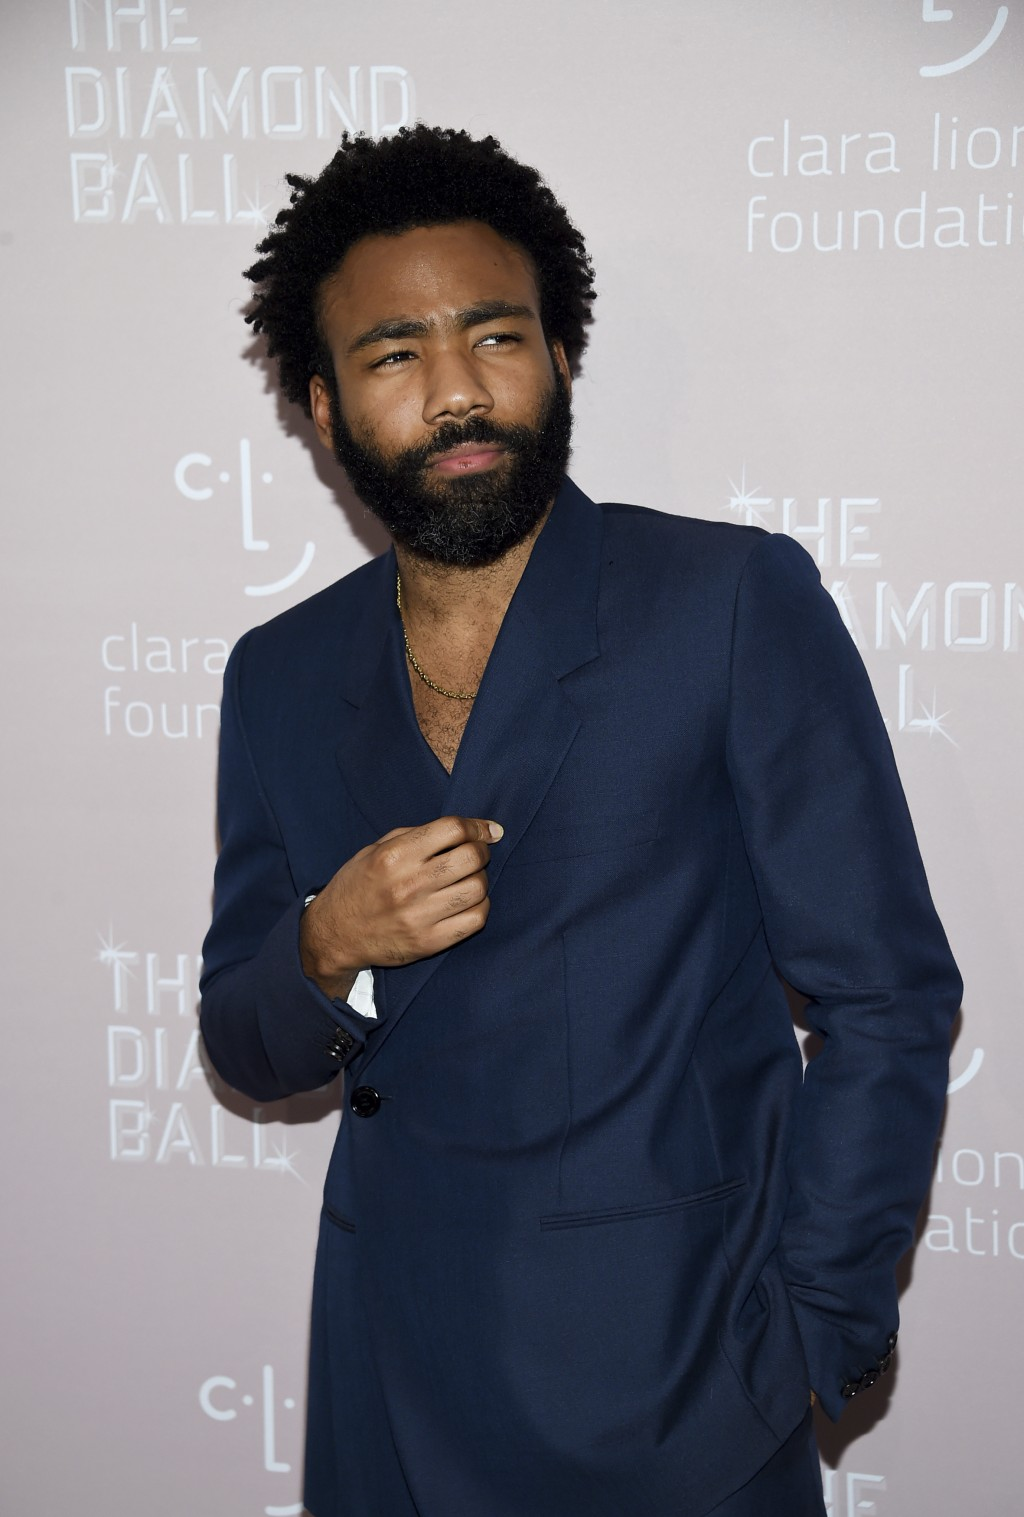 Actor/rapper Donald Glover aka Childish Gambino attends the 4th annual Diamond Ball at Cipriani Wall Street on Thursday, Sept. 13, 2018, in New York.